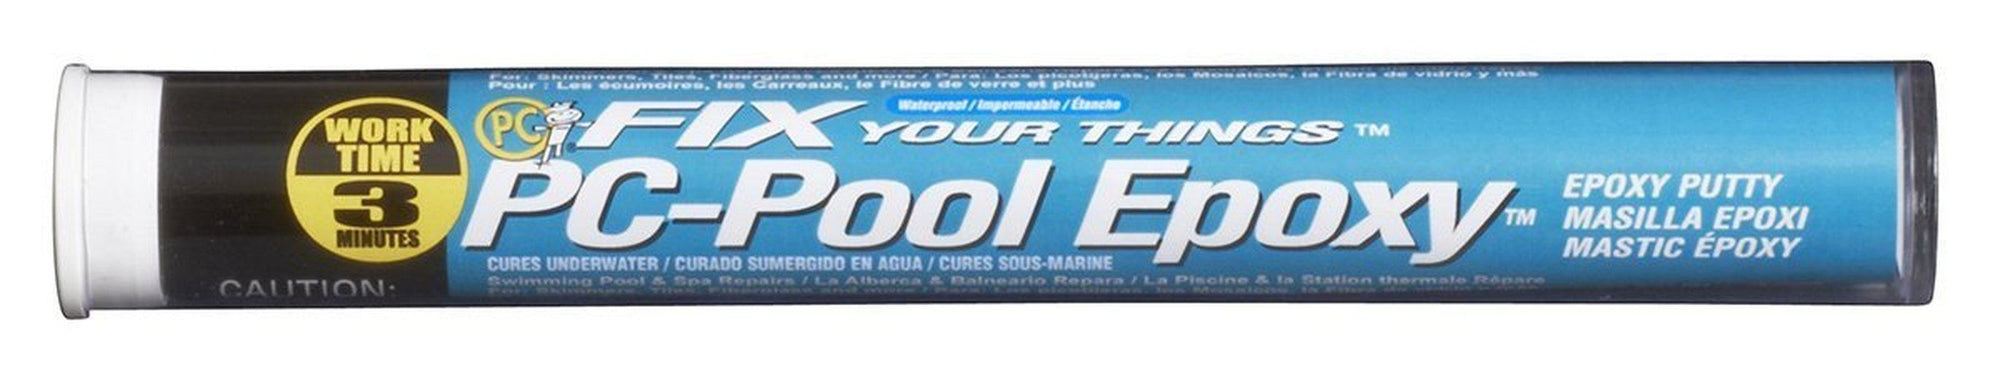 Pool Putty Moldable Epoxy 4 oz Stick Off-White Home & Garden > Pool & Spa Generic